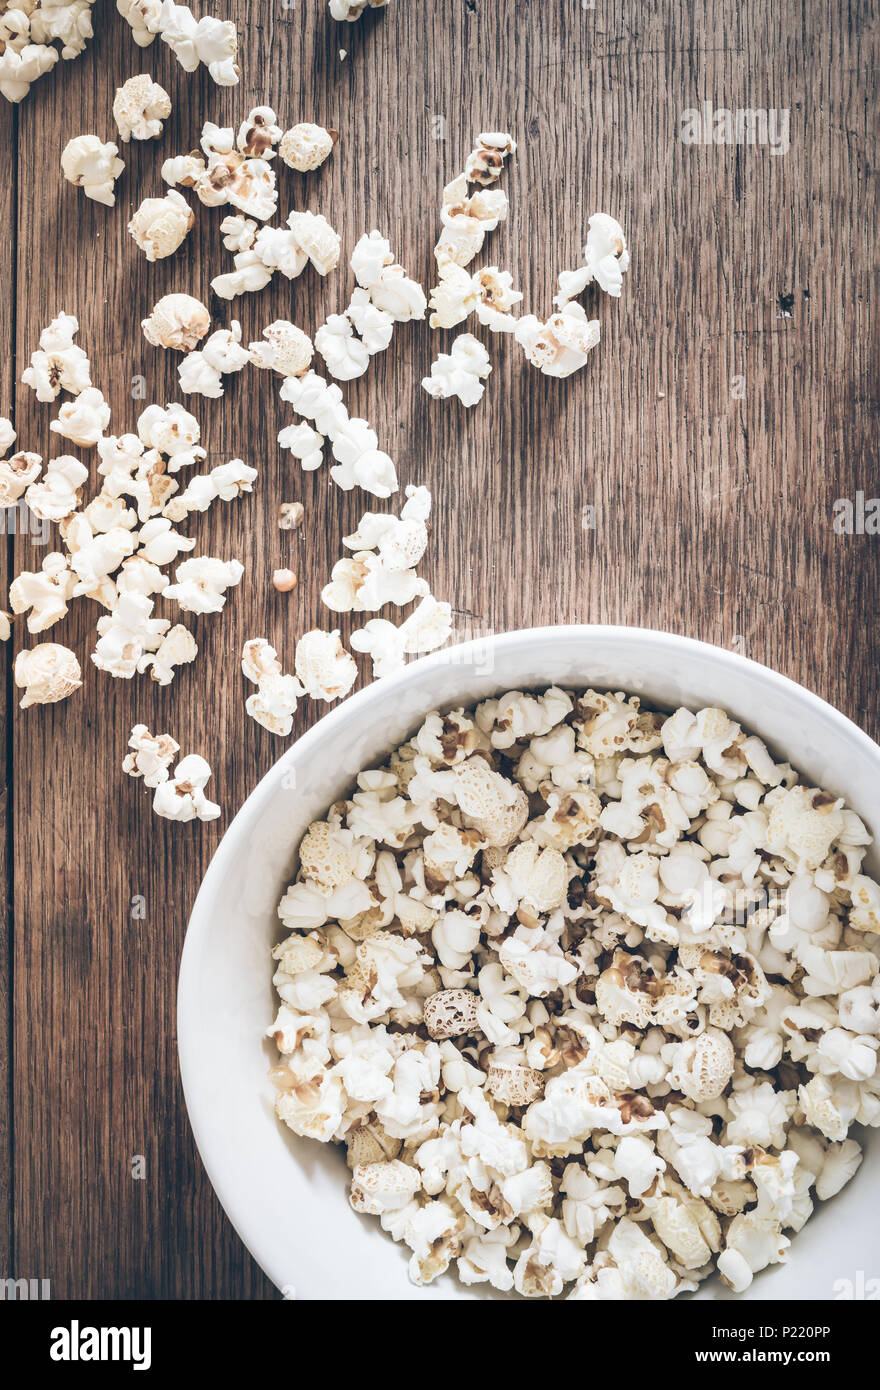 directly above shot of bowl filled with popcorn and spilled popcorn on rustic wooden table - Stock Image